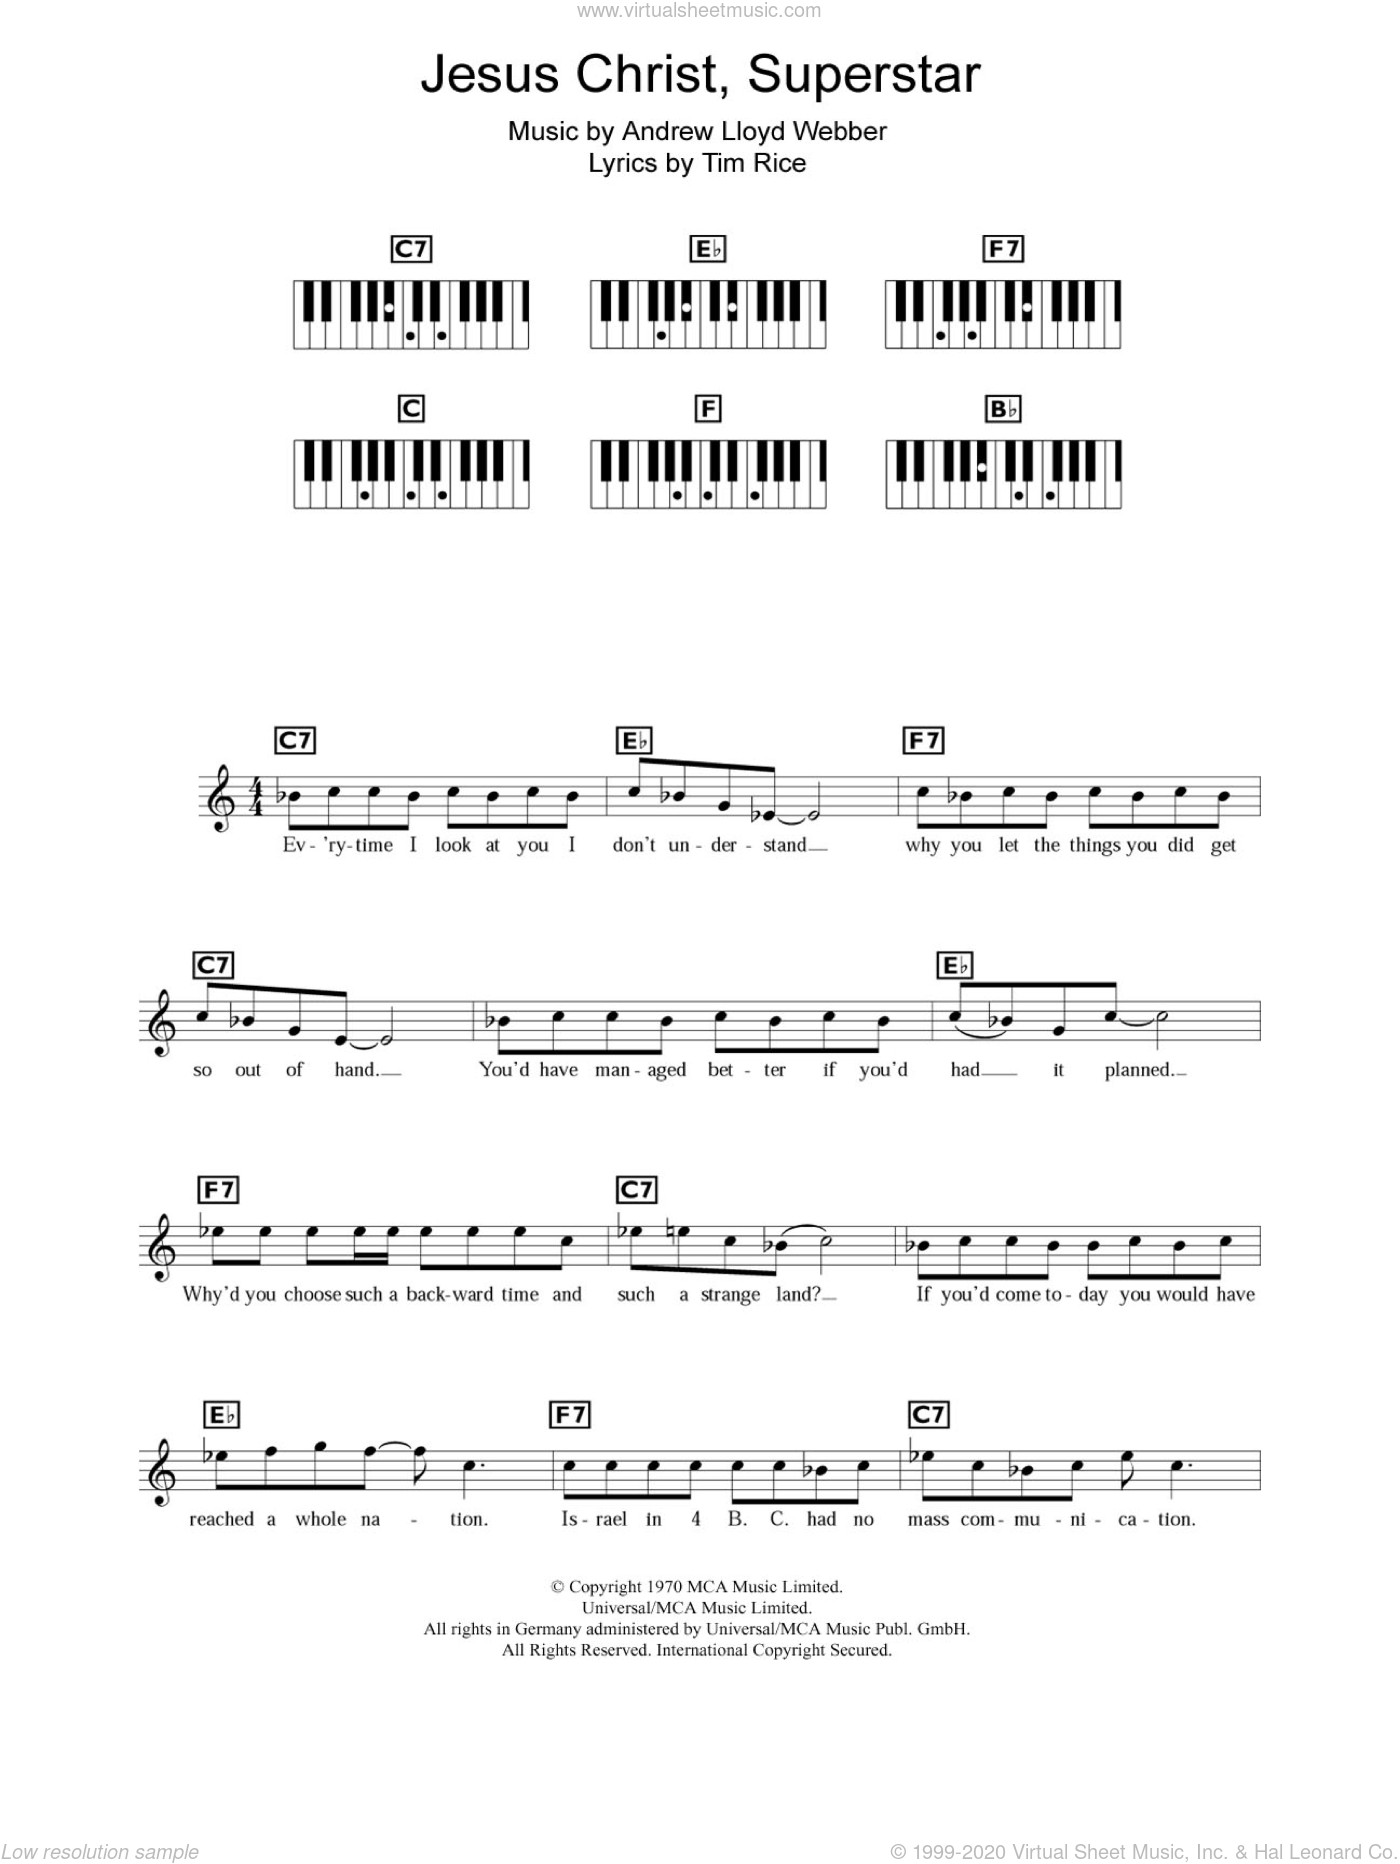 Jesus Christ, Superstar sheet music for piano solo (chords, lyrics, melody) by Andrew Lloyd Webber and Tim Rice. Score Image Preview.